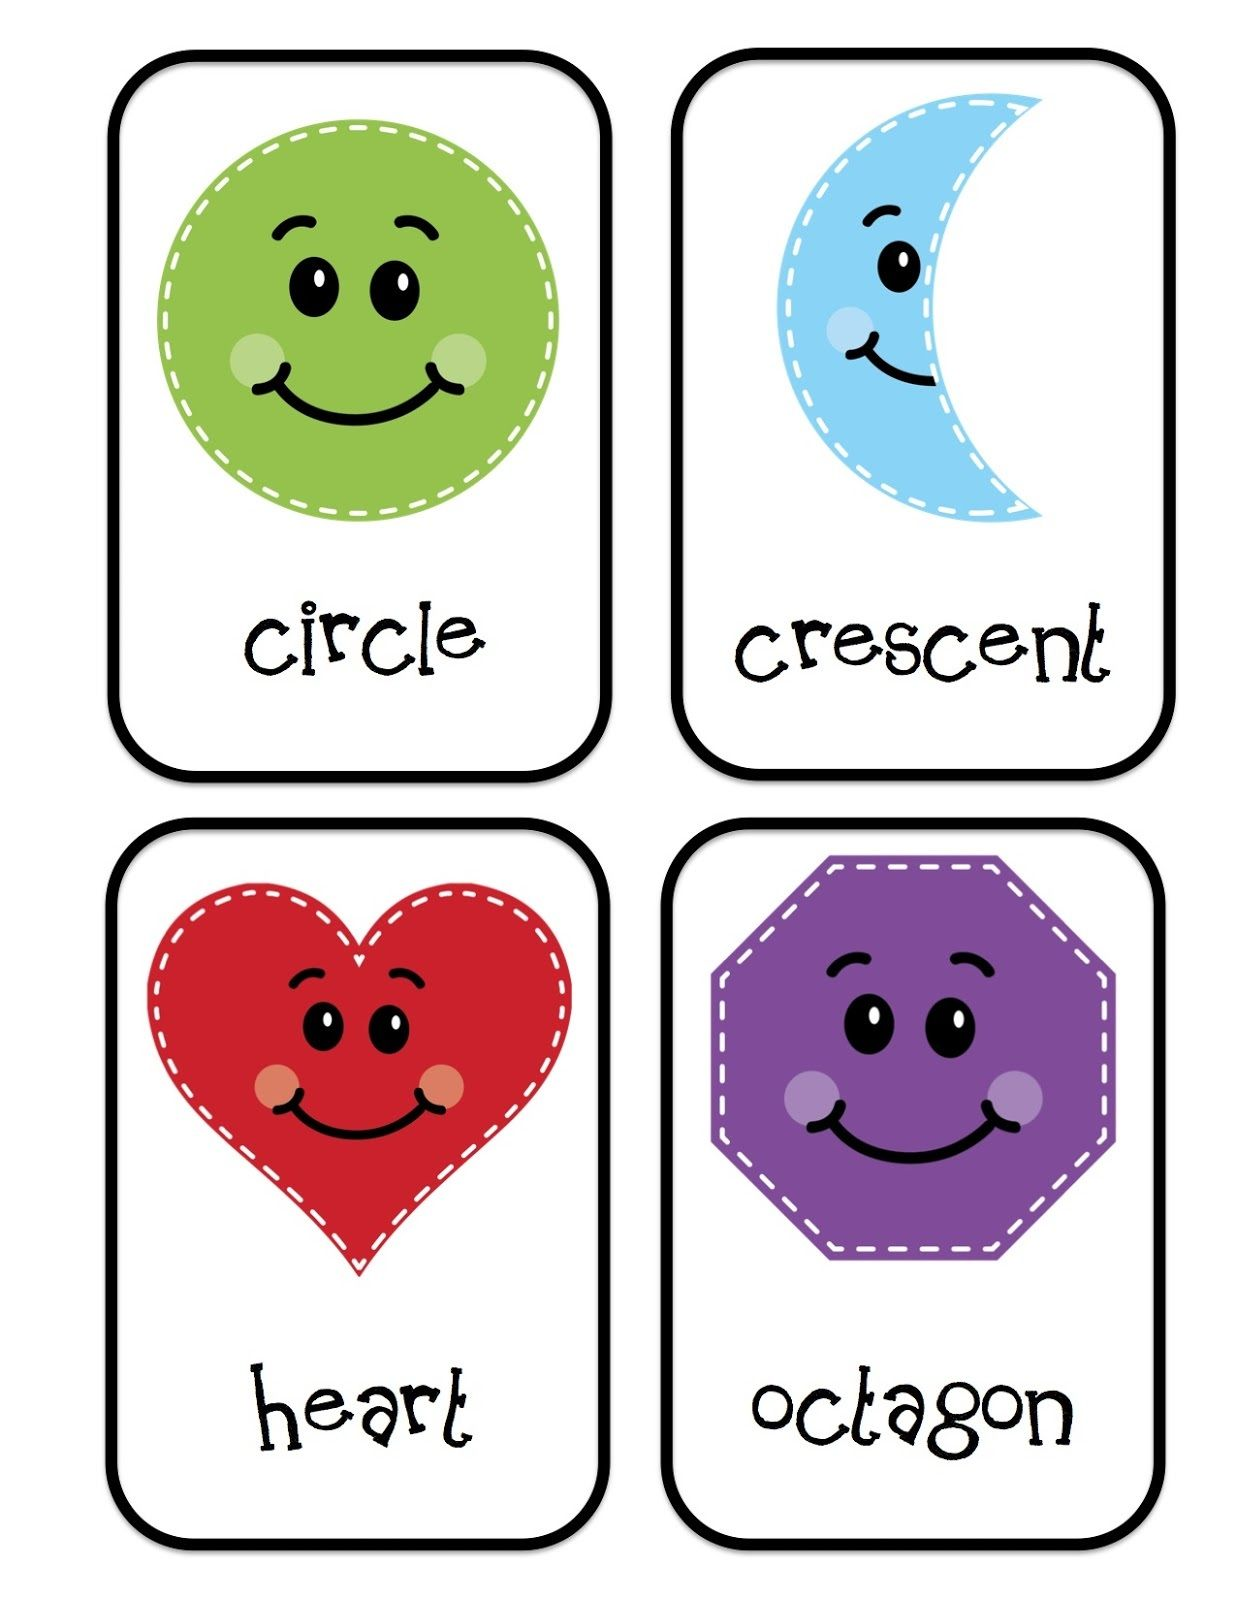 Preschool Printables Shapes For Students K5 Worksheets Shapes Preschool Shapes Preschool Printables Learning Shapes [ 1600 x 1236 Pixel ]